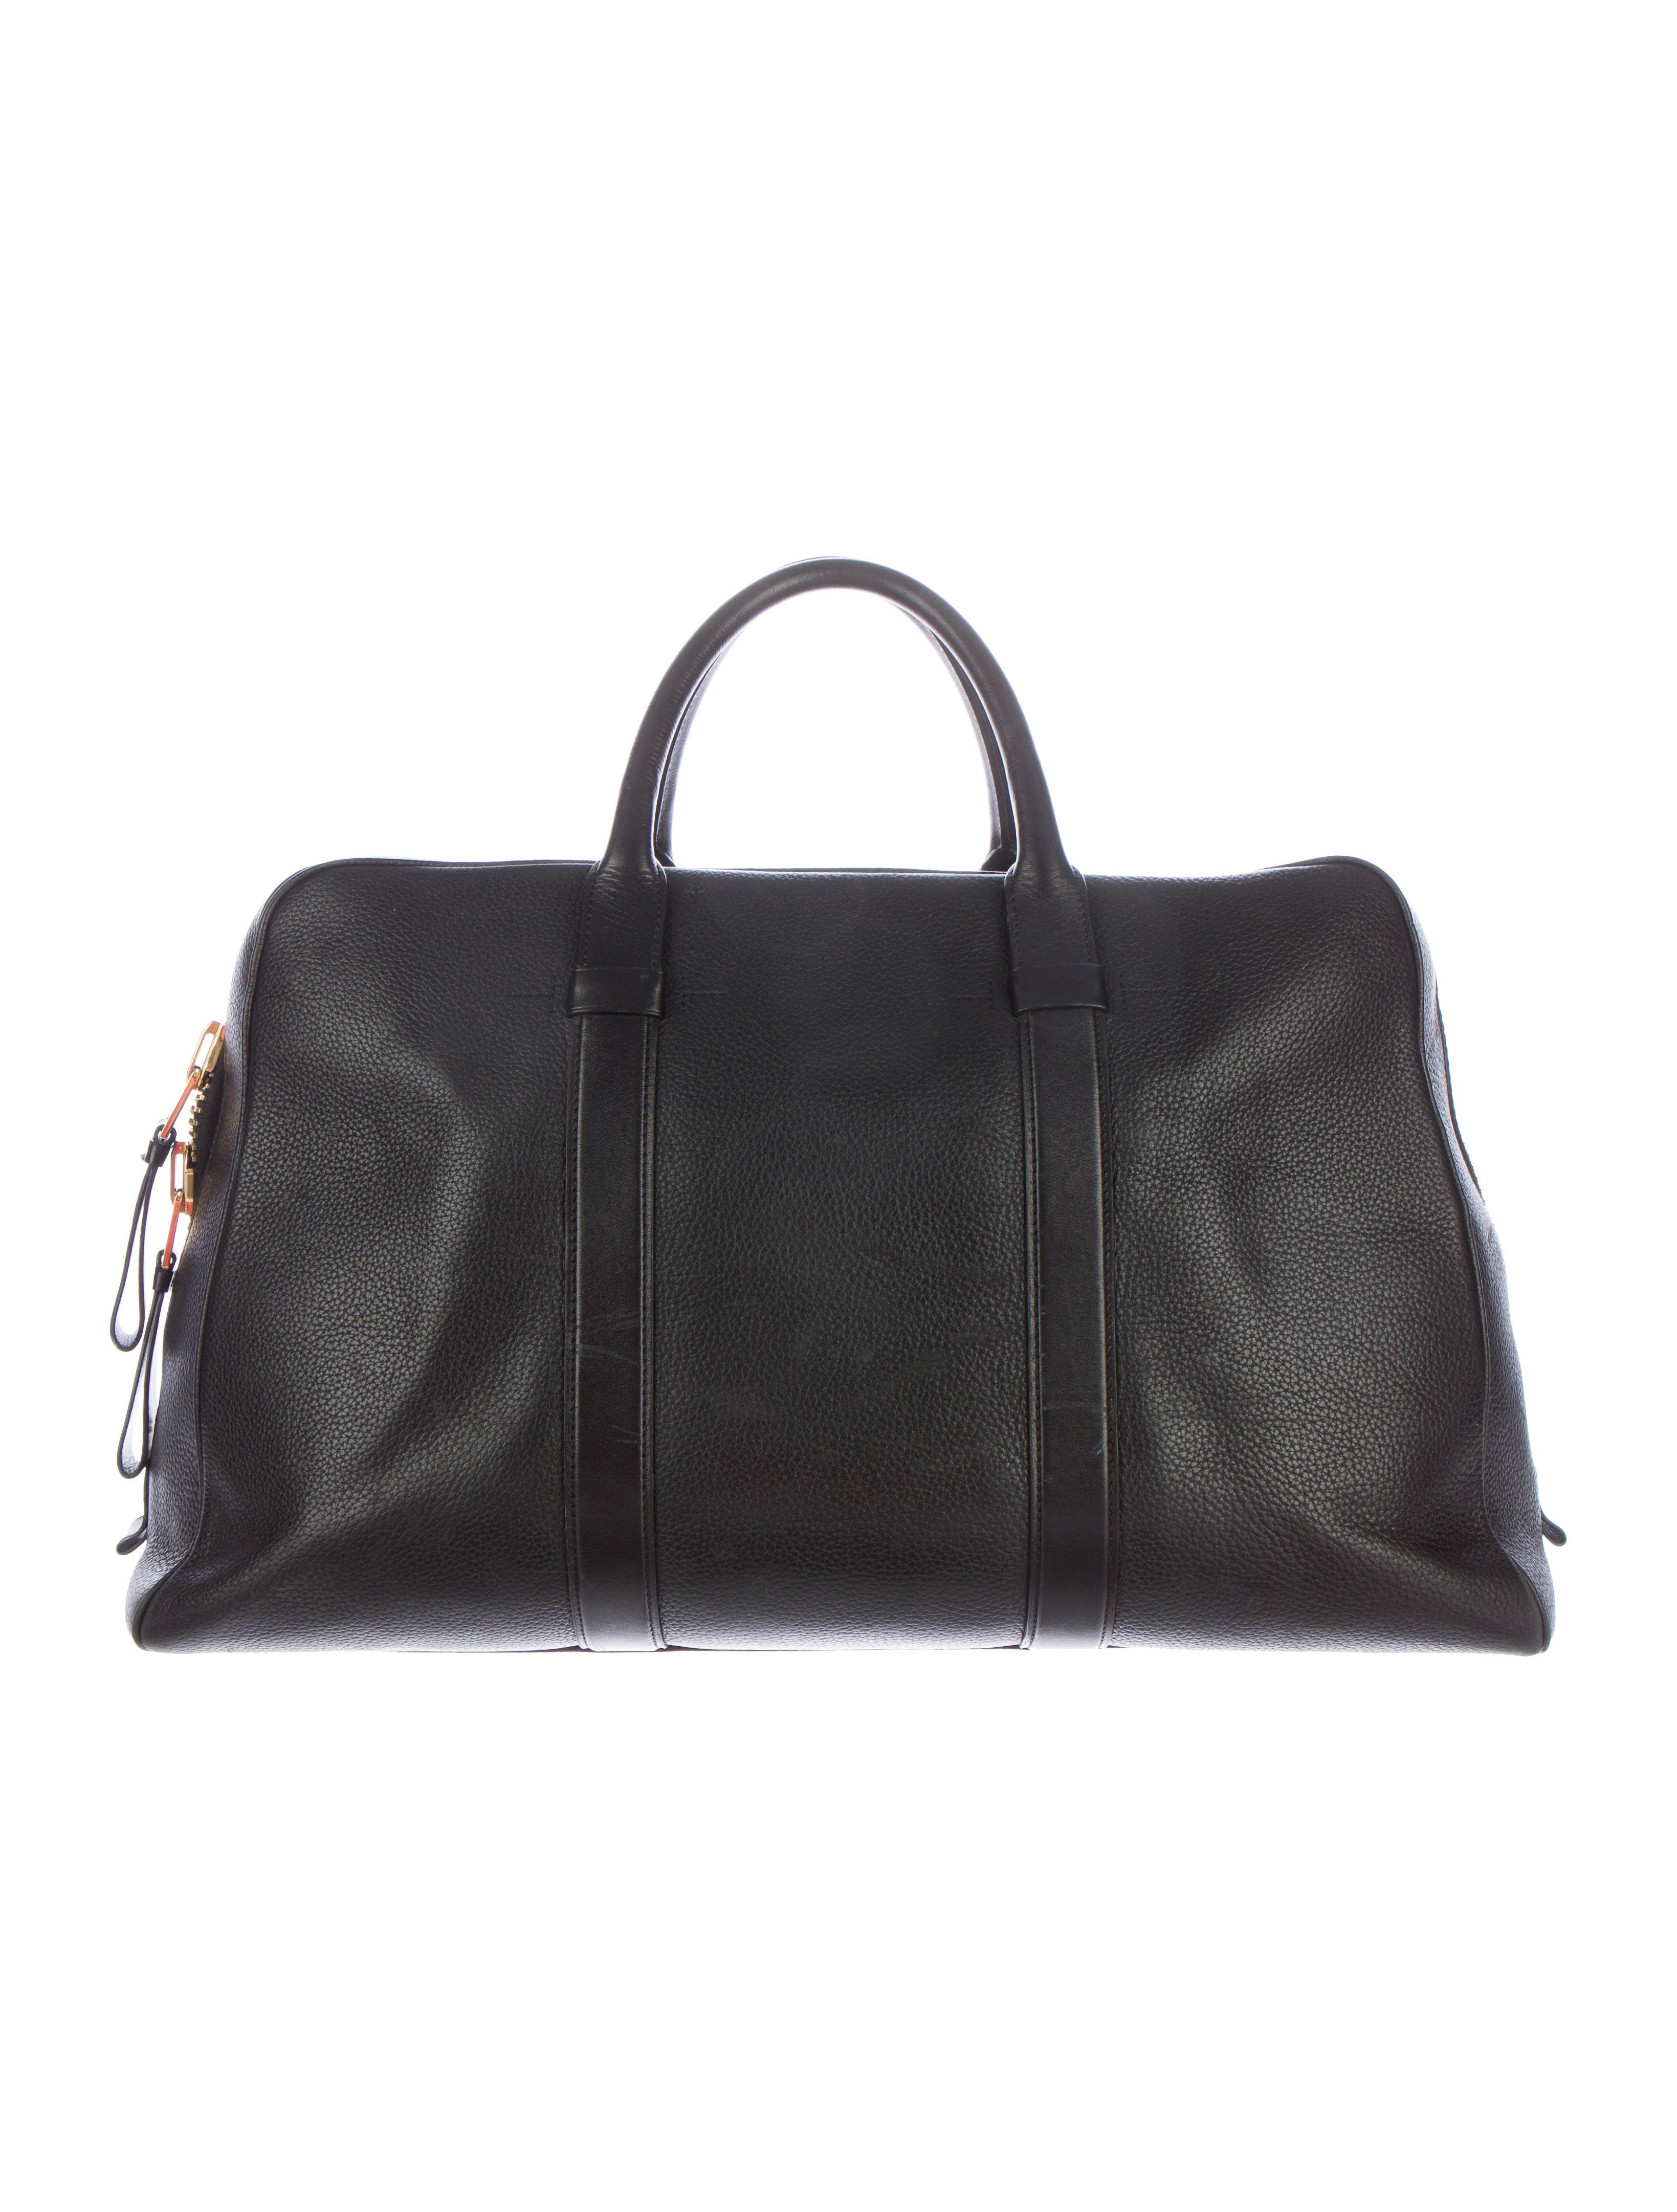 c74710e608c2 Men s black grained leather Tom Ford Small Buckley Duffel Bag with gold